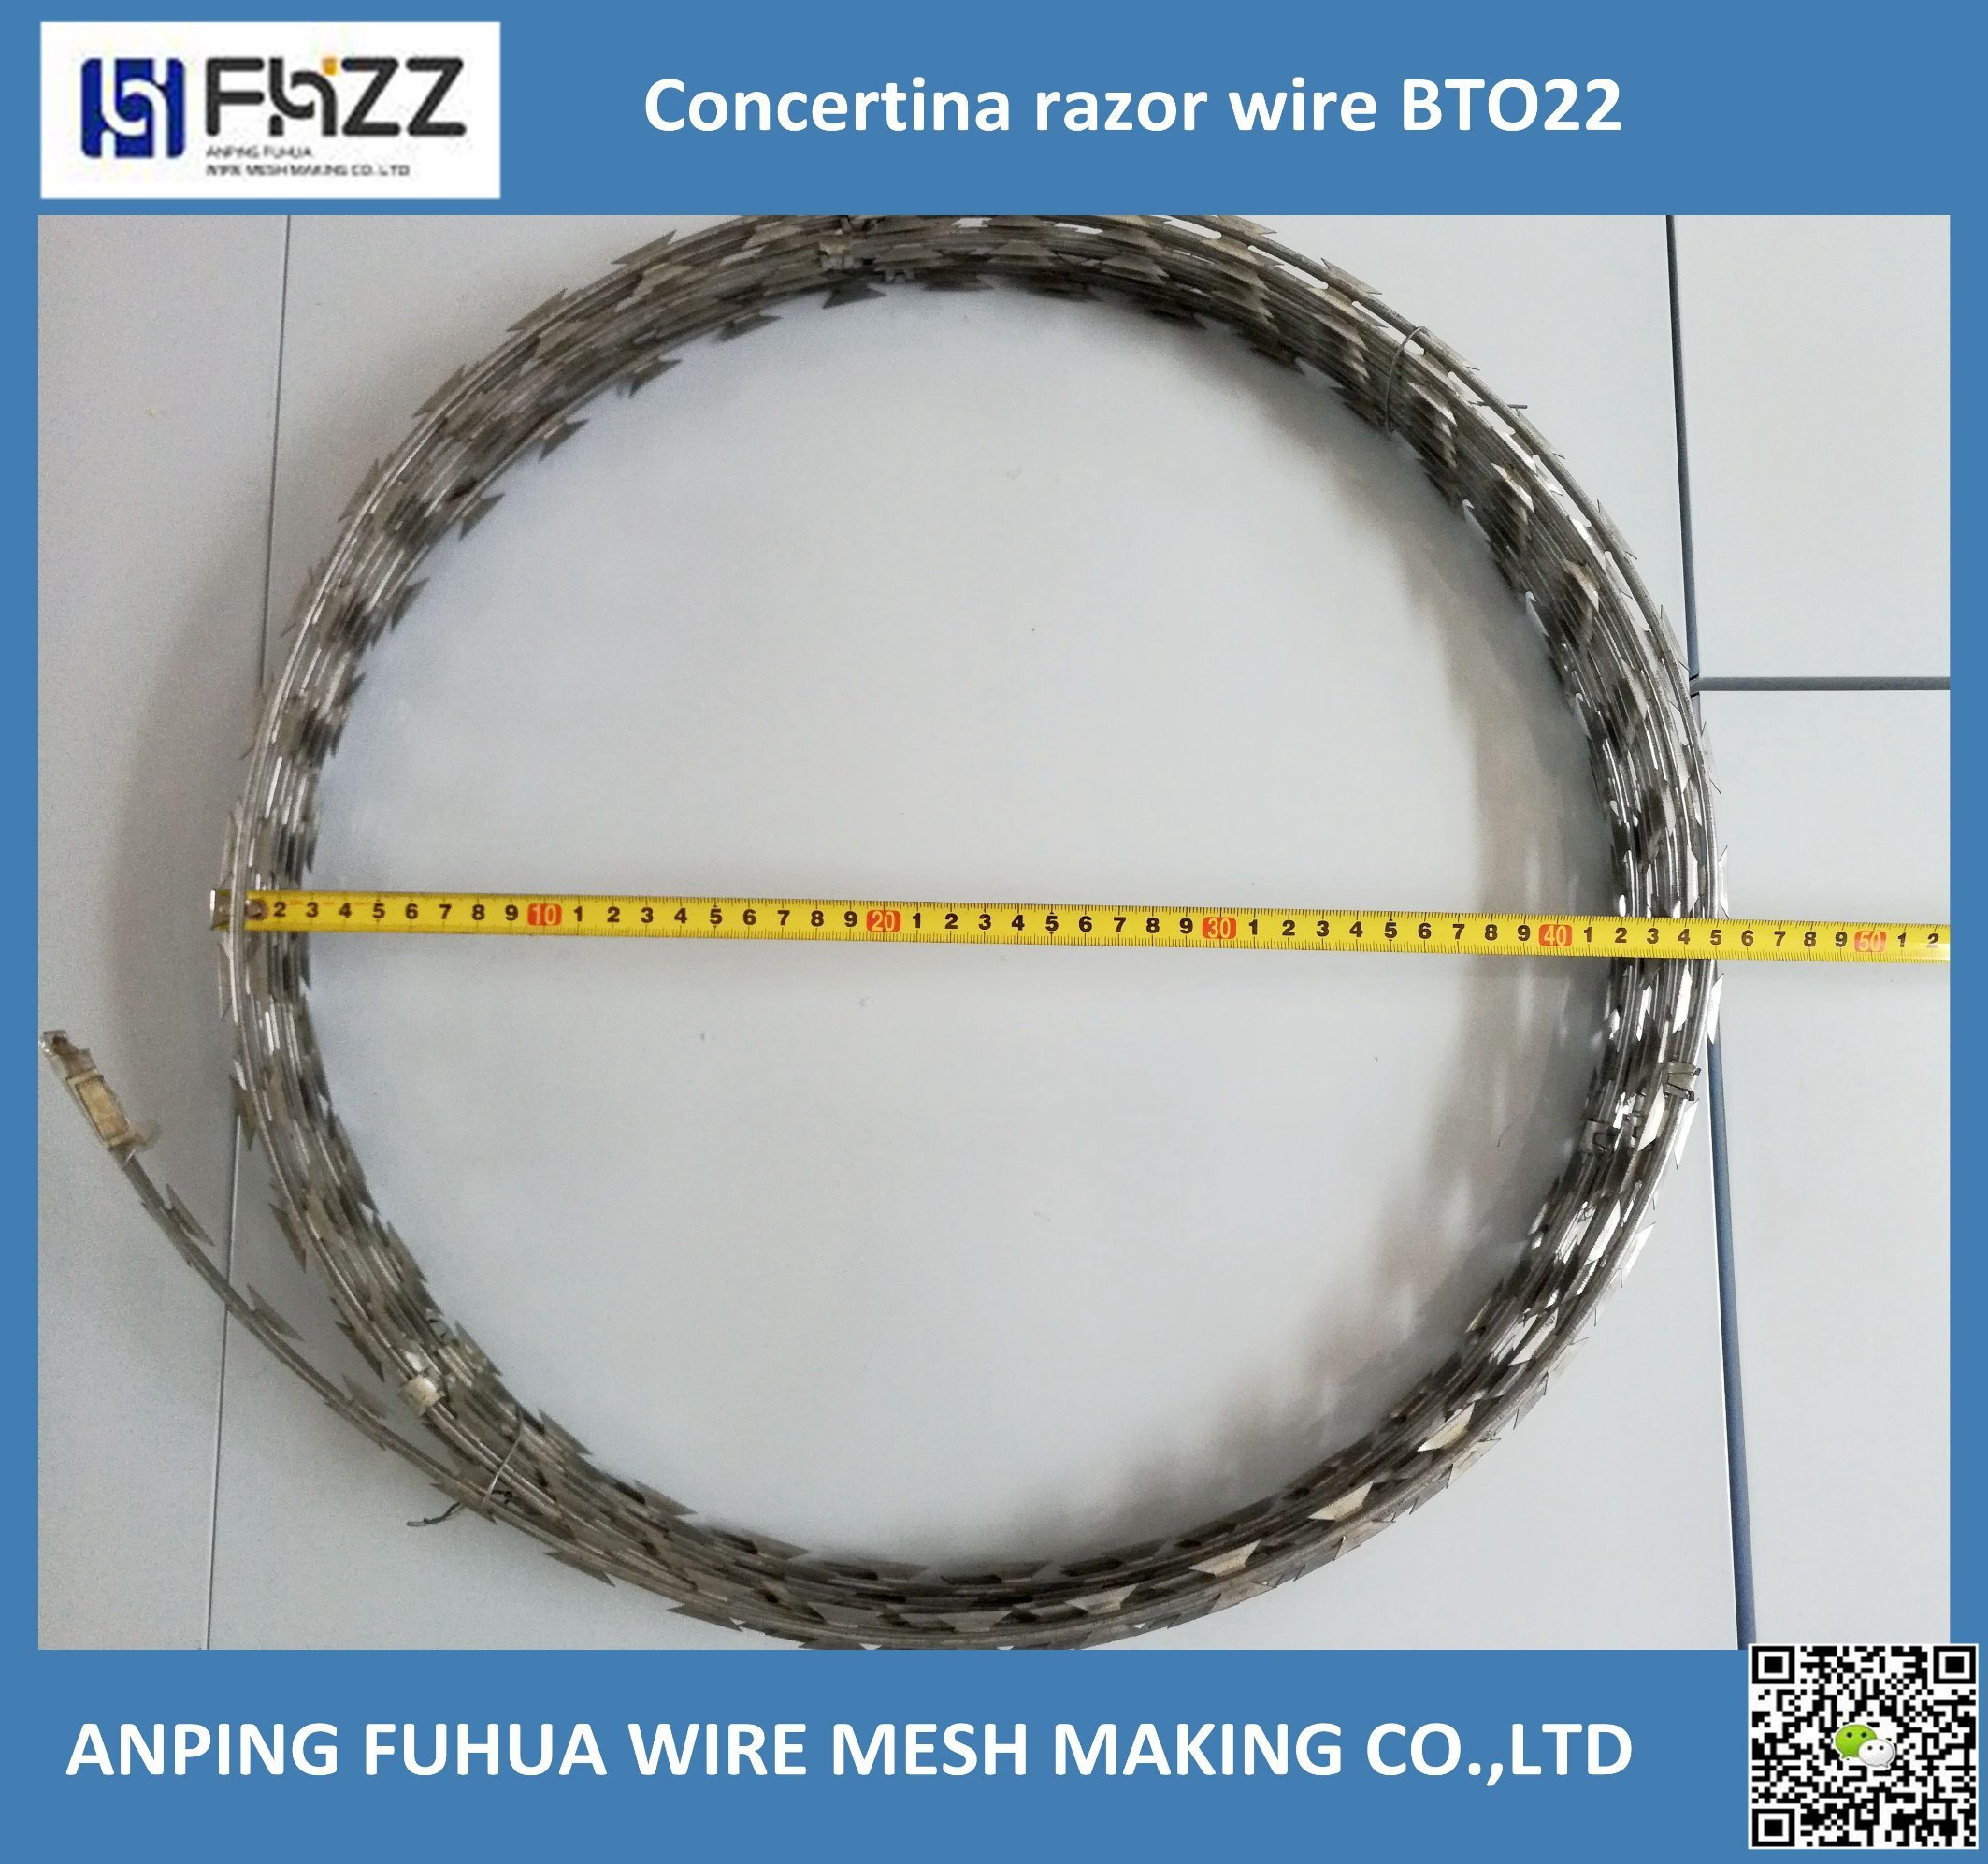 China Bto 22, Cbt 65 Protection Galvanized Razor Babed Wire Fence ...